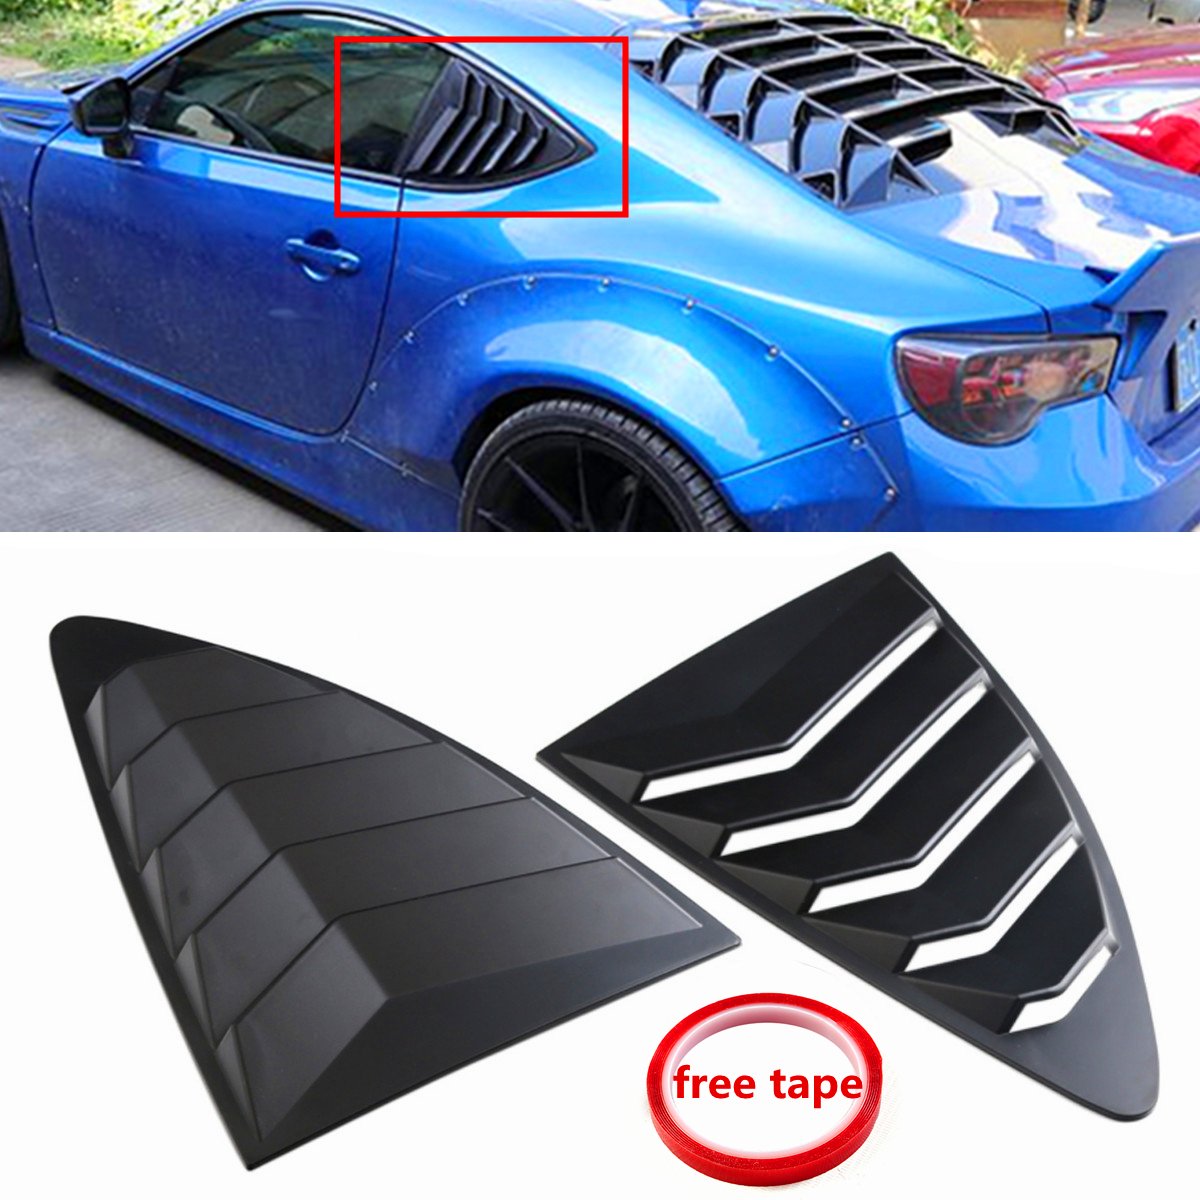 2pcs Car Rear Louver Quarter Window Panel Black Plastic For Scion FRS for subaru BRZ for Toyota 86 GT86 2013-2018 ABS Stickers